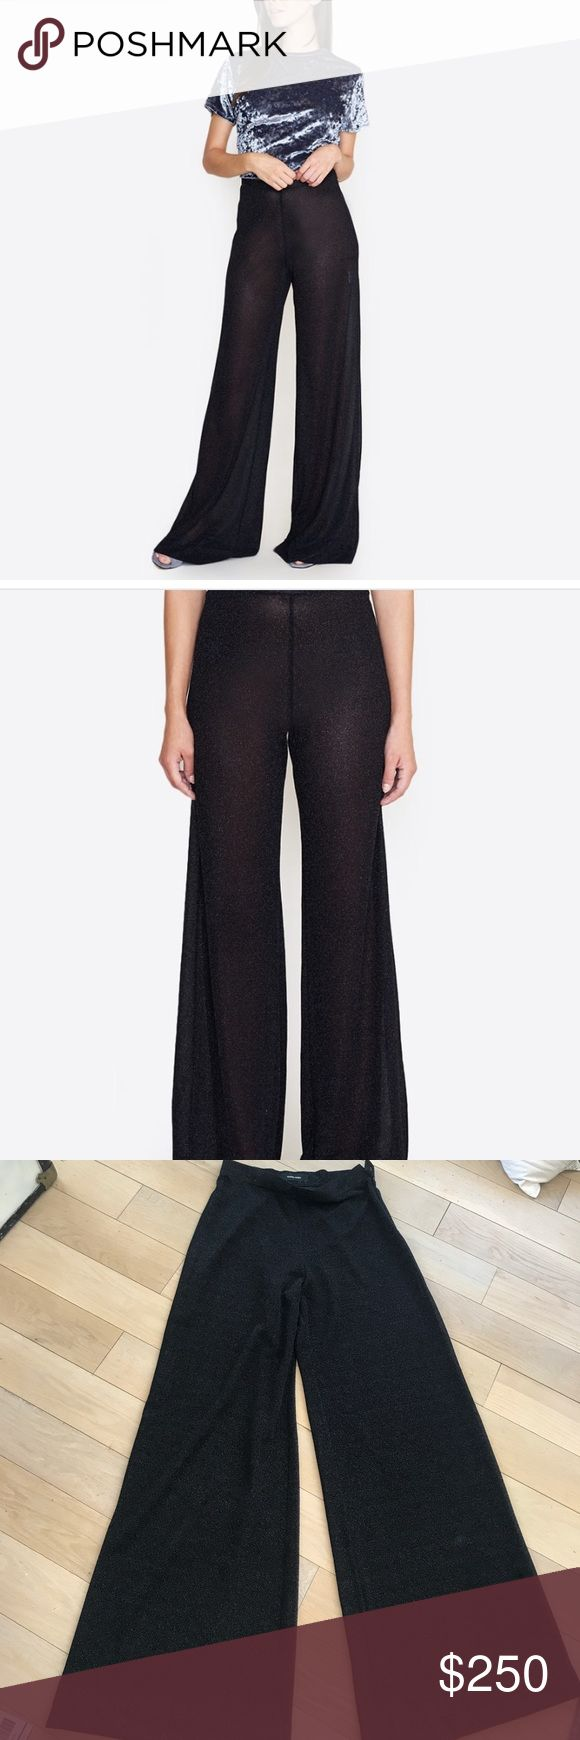 Rachel comey pants Rachel comey cleric shimmer pants. These are sold out almost everywhere! New for fall 2017. Size 4 worn only one time and professionally hemmed to fit someone who is 5'6. These pants are amazing! They're Sheer so I would suggest wearing them with a black high waisted pair on panties. A few very minor pulls in the front (pictured) but they are not seen when worn. Rachel Comey Pants